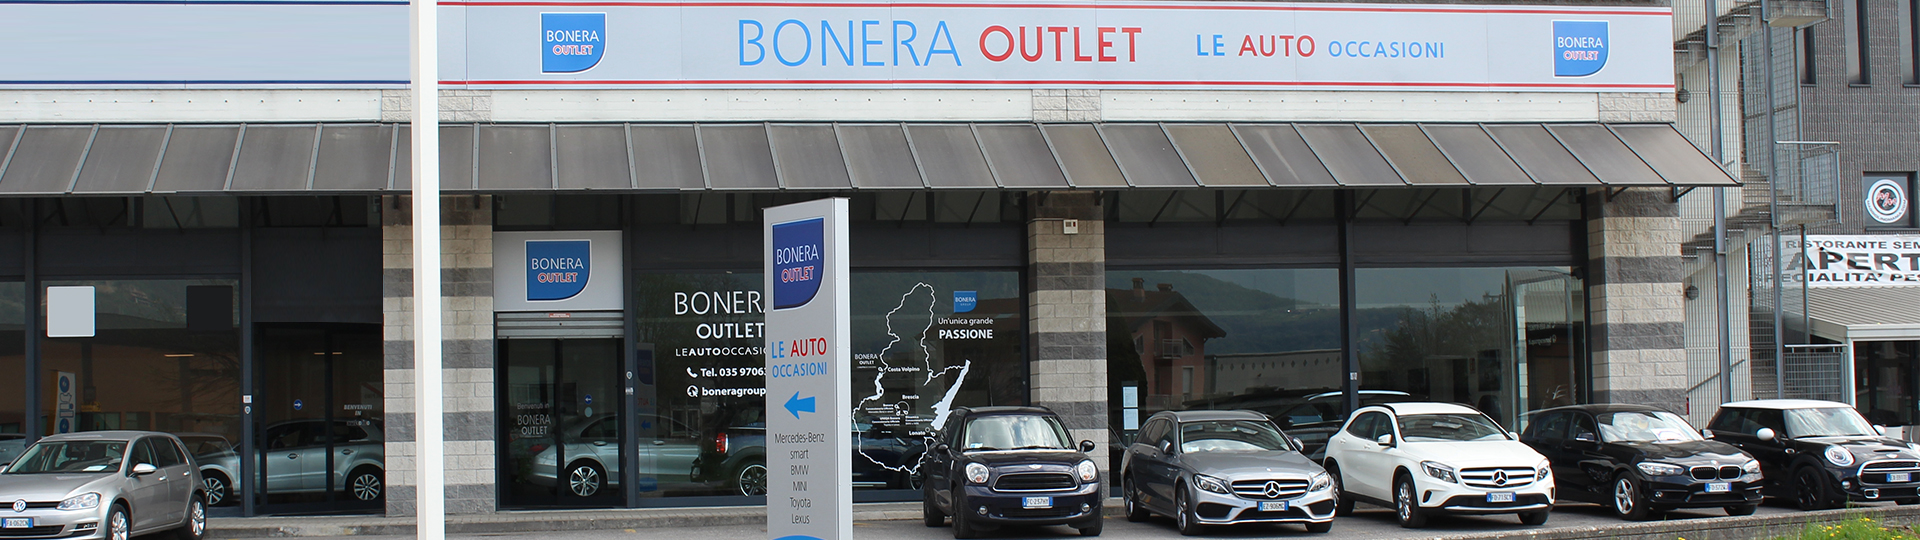 sedi_bonera_outlet_costa_volpino.jpg